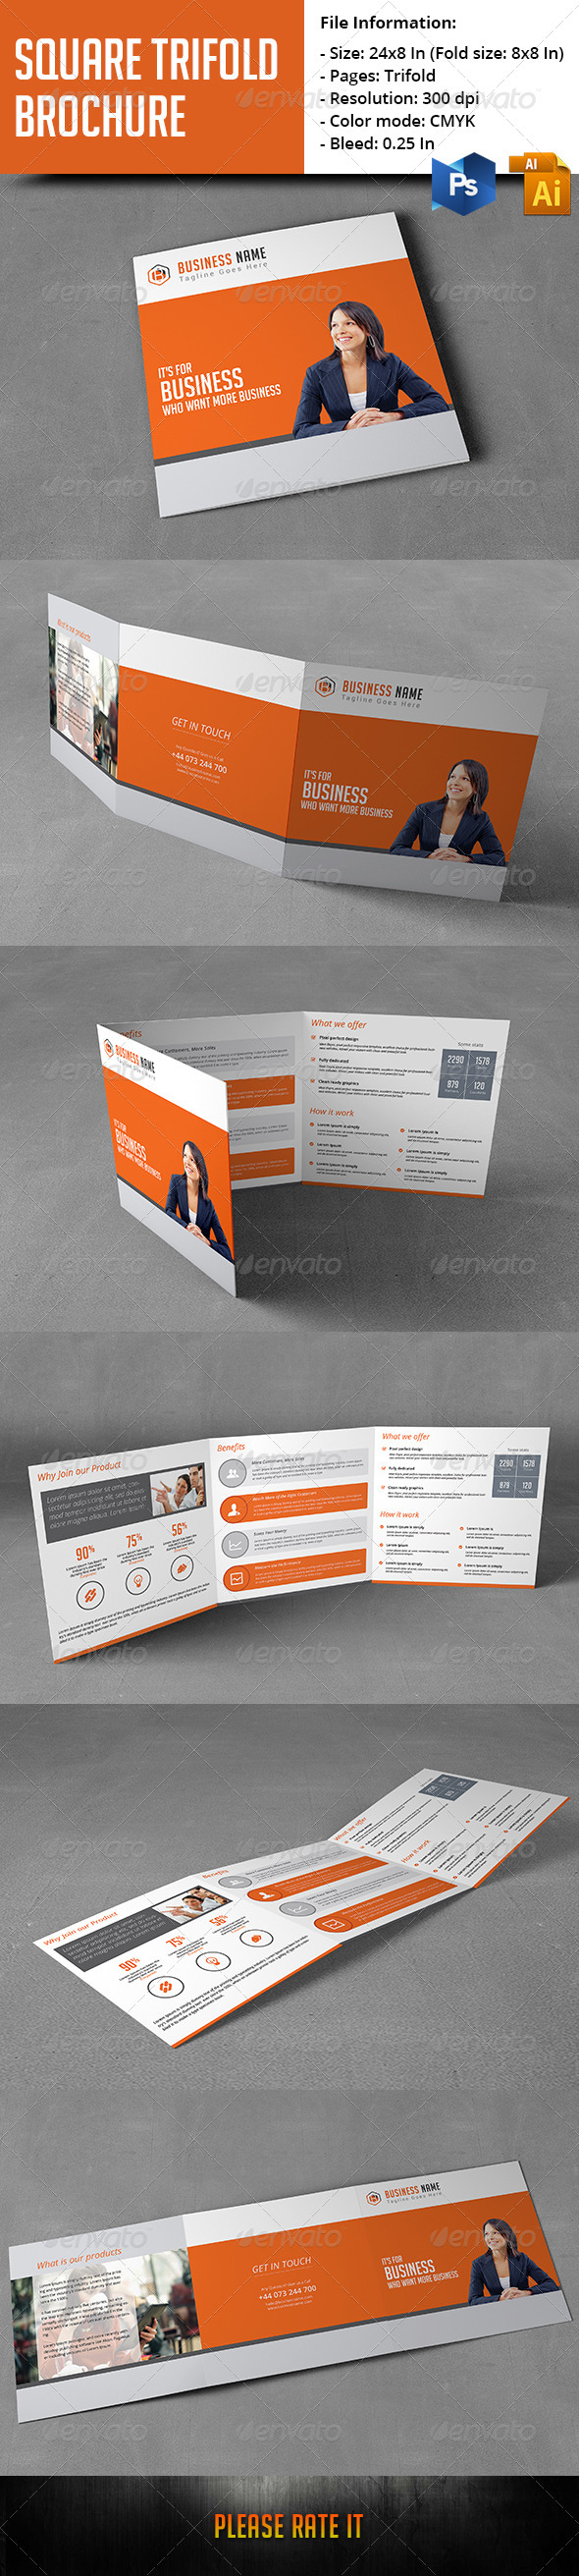 GraphicRiver Square Trifold Brochure 8216051